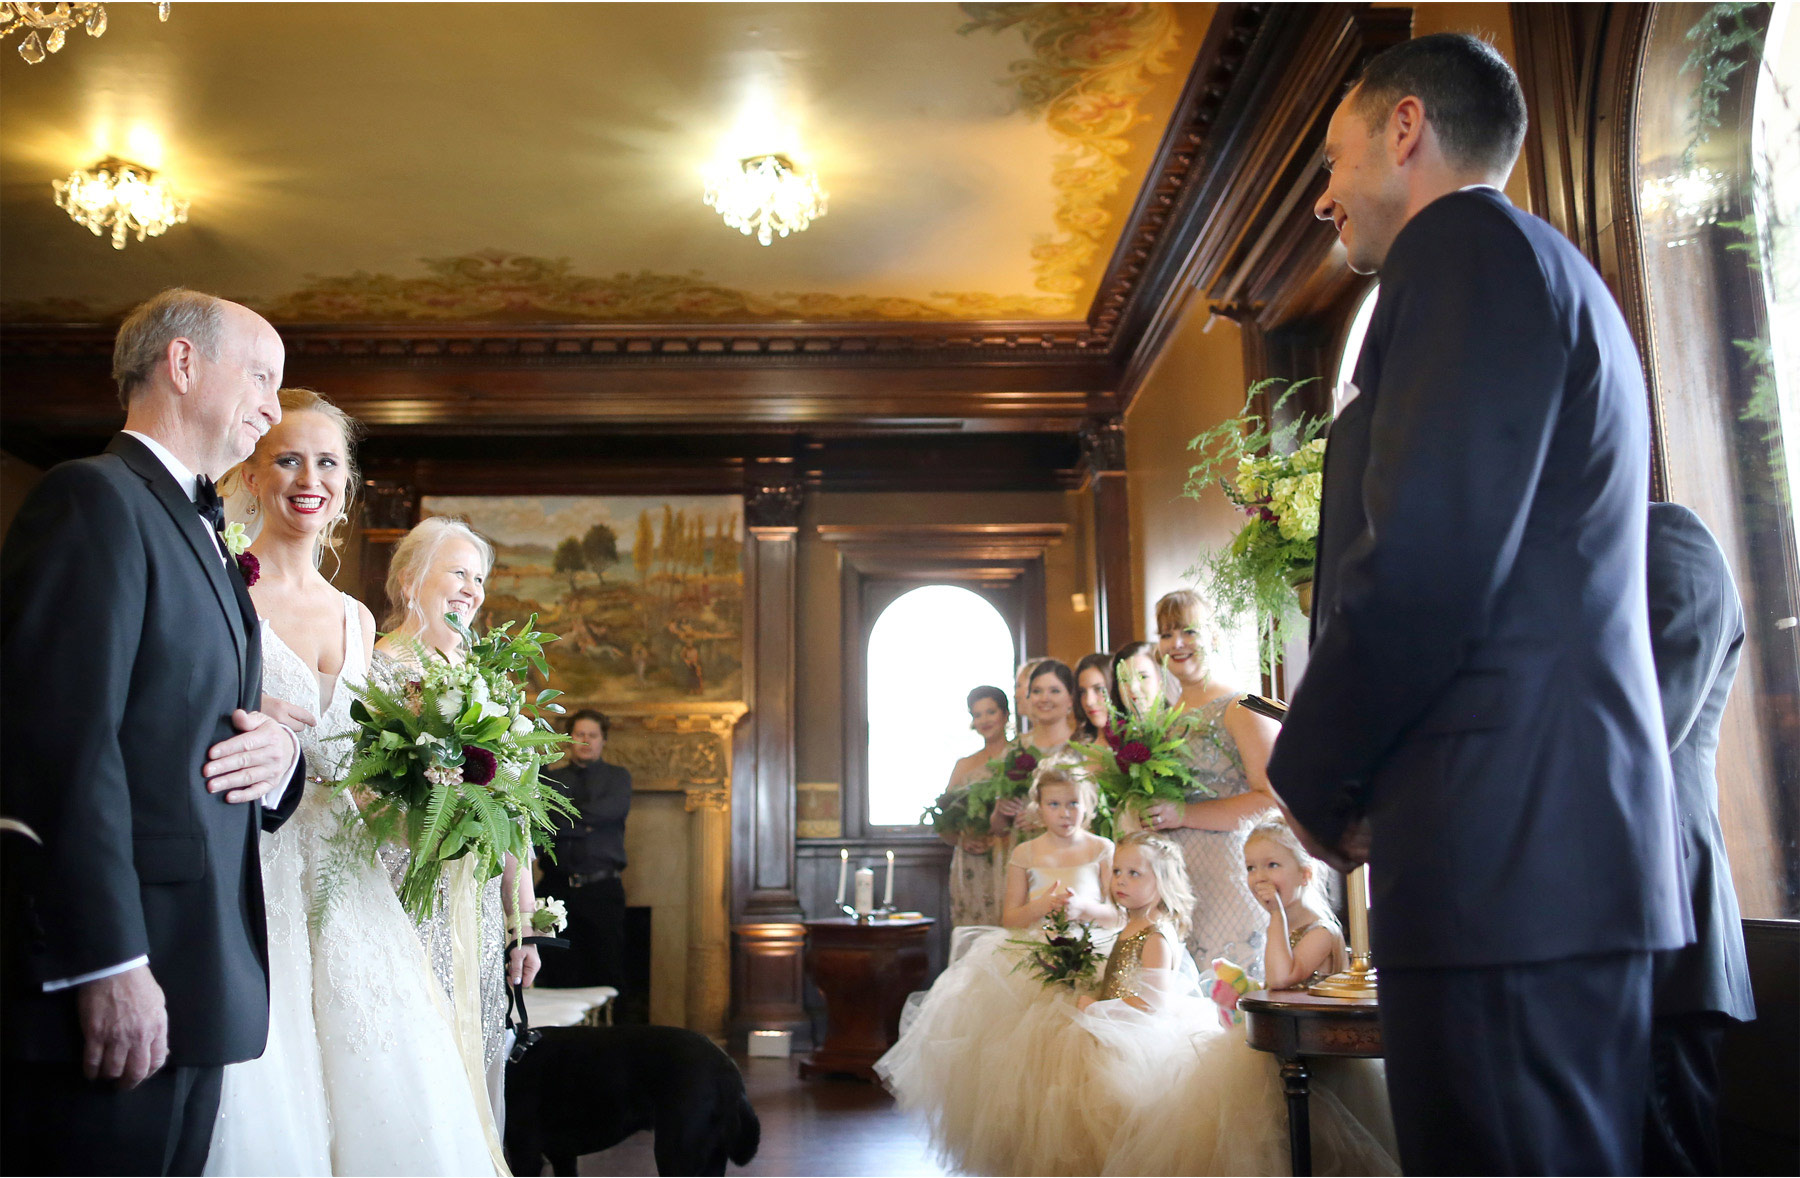 08-Minneapolis-Wedding-Photography-by-Vick-Semple-Mansion-Ceremony-Abby-and-Jason.jpg